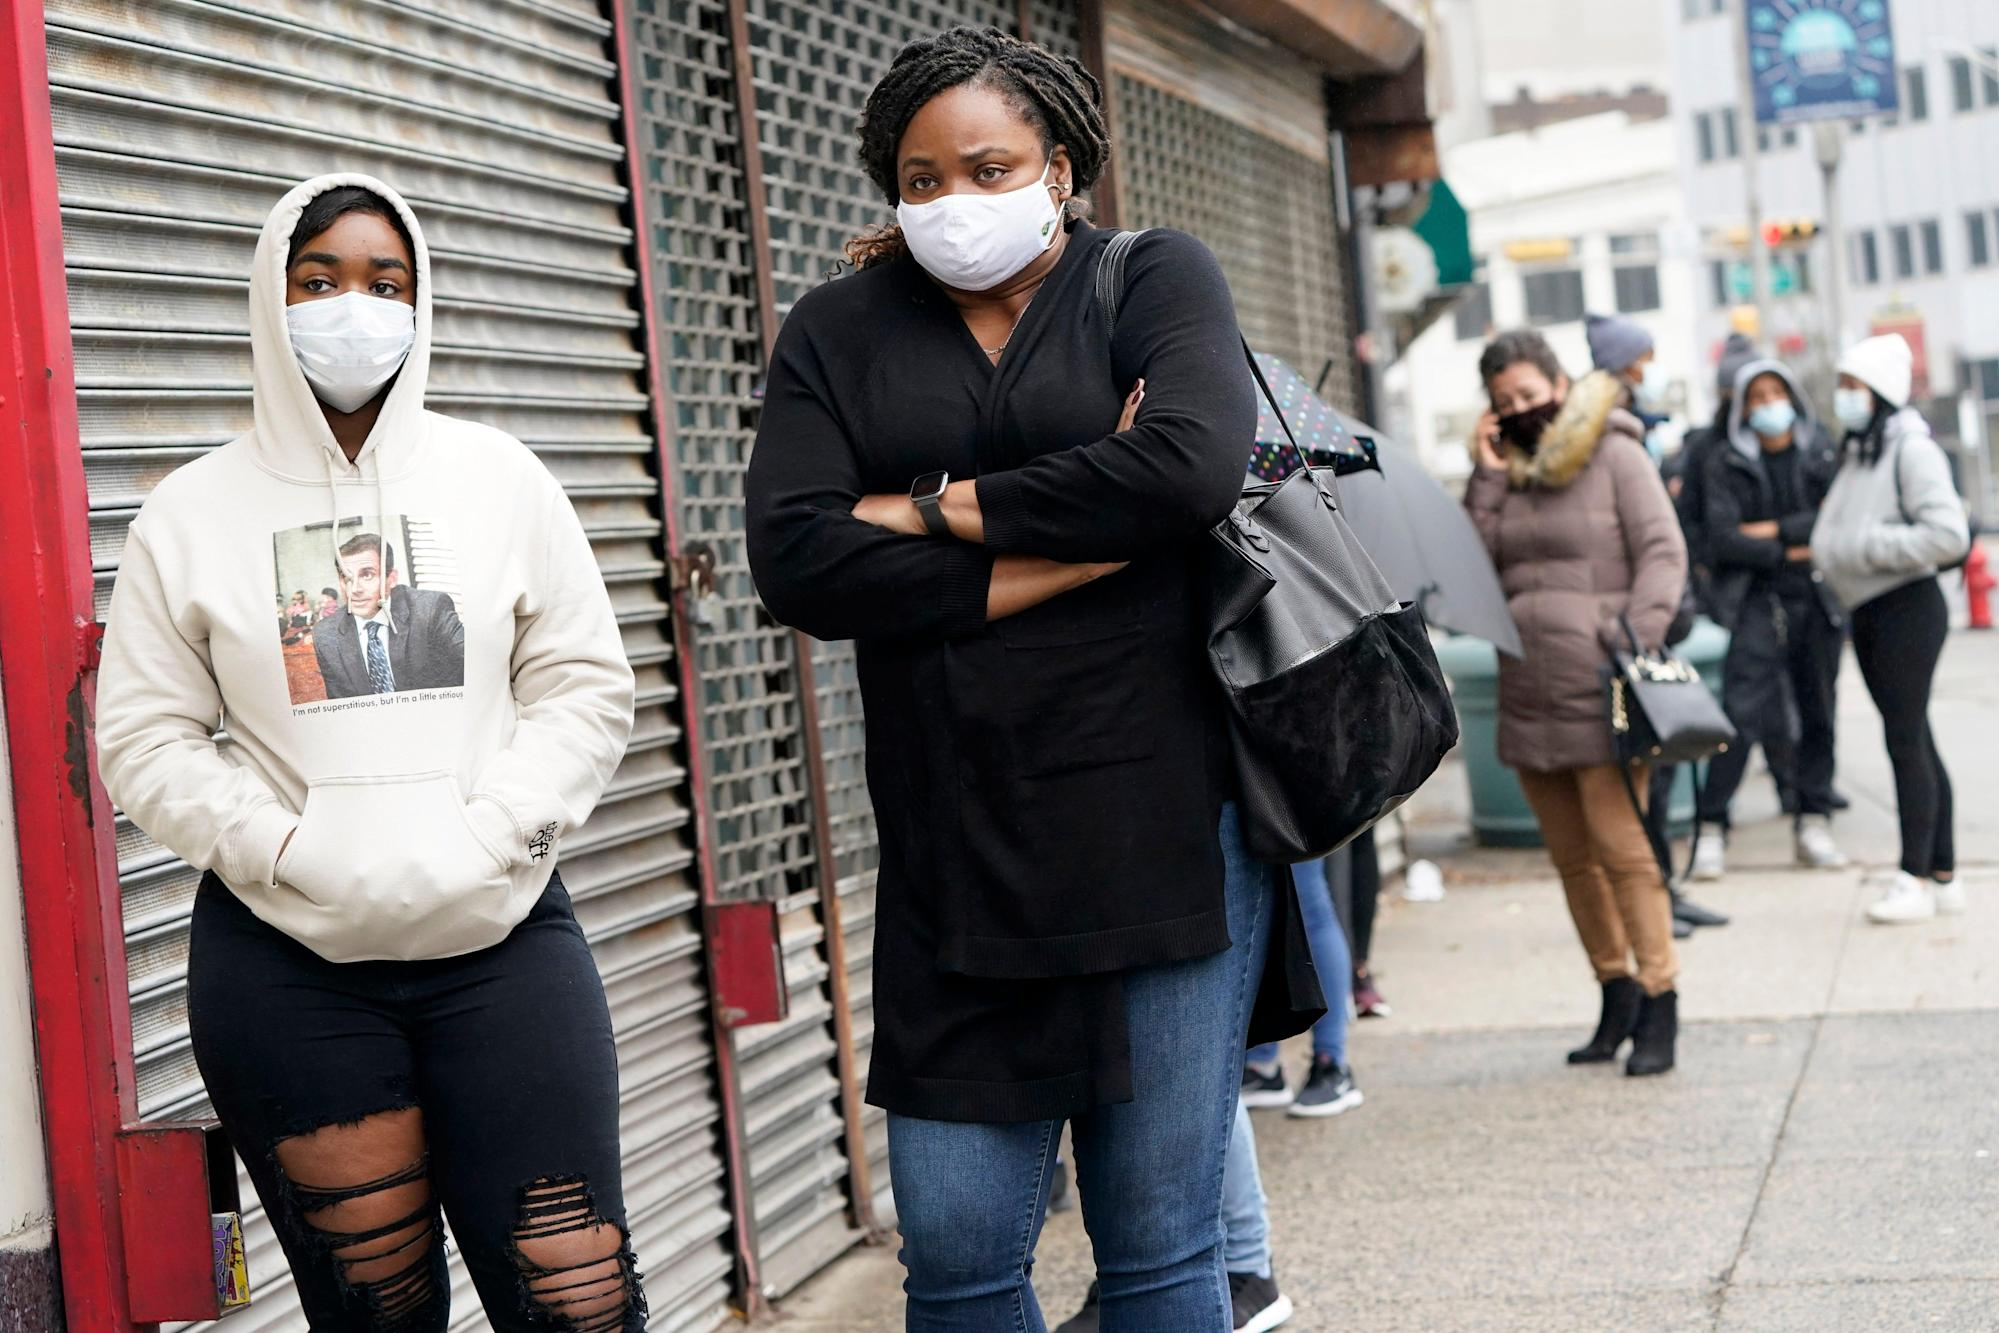 Coronavirus live updates: New Jersey's largest city sets curfew; LA residents celebrating Lakers win may have led to massive outbreak